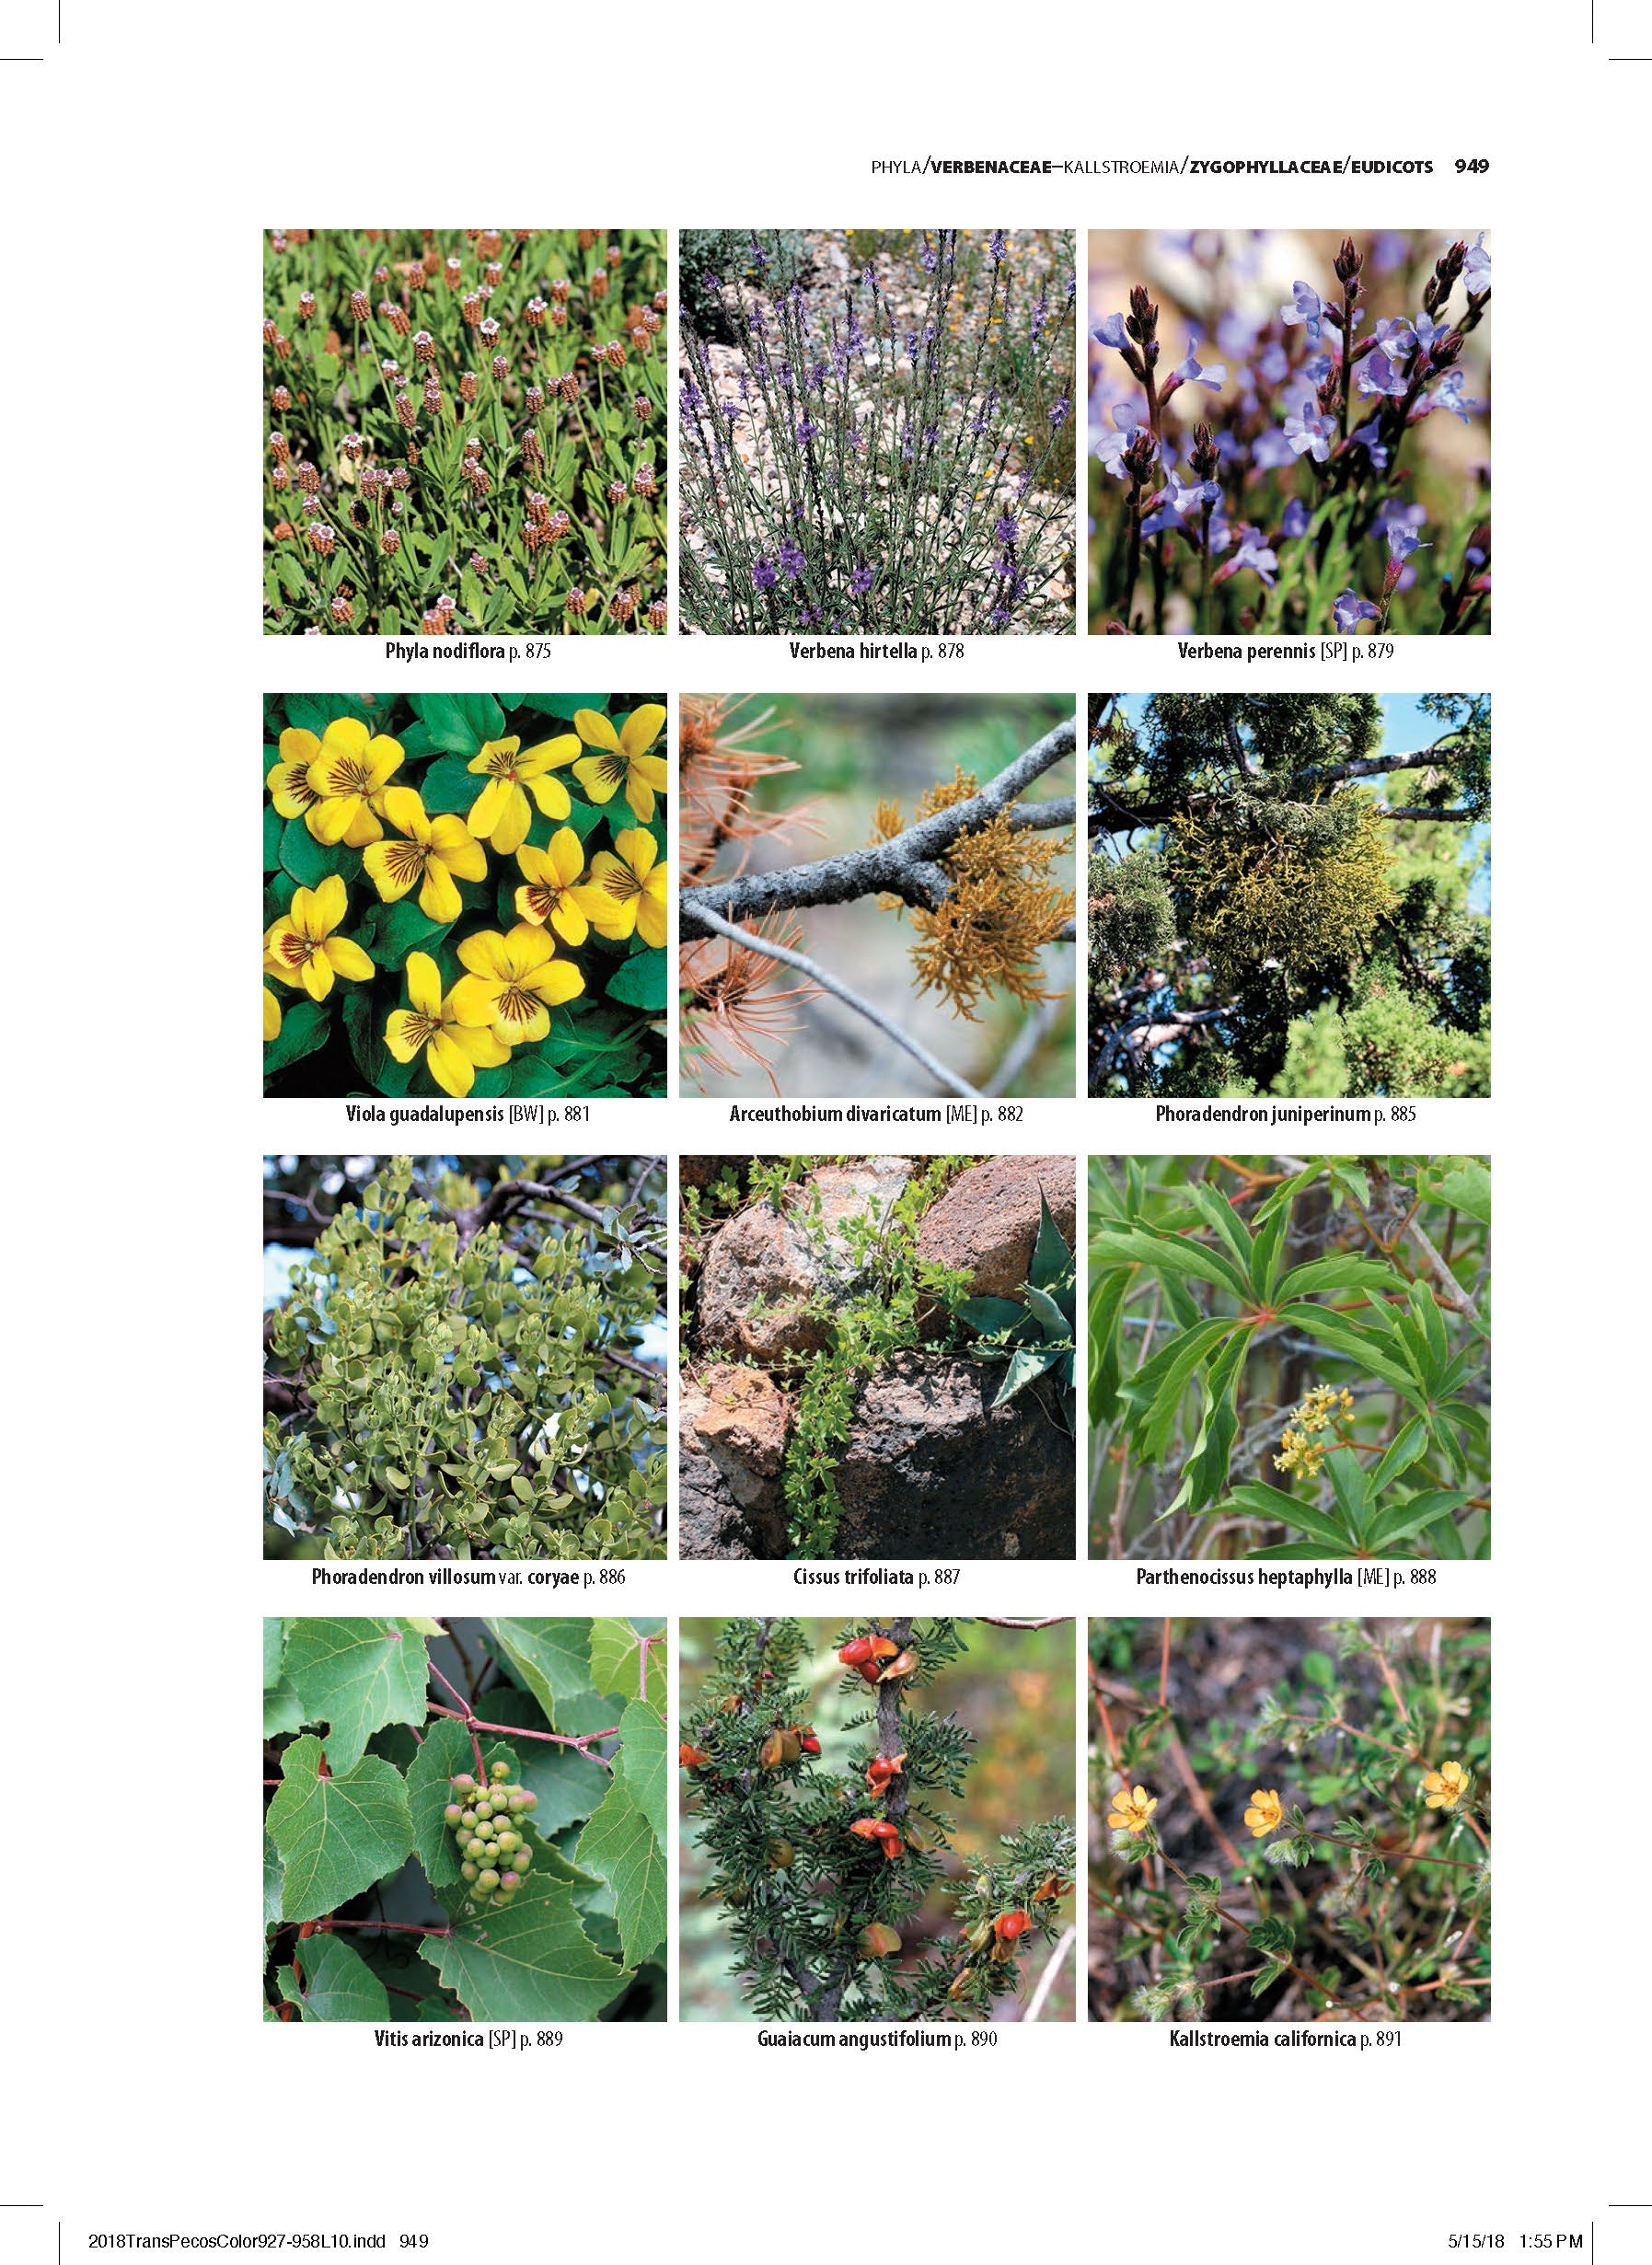 Flowering Plants Of Trans Pecos Texas And Adjacent Areas (Pre Order)